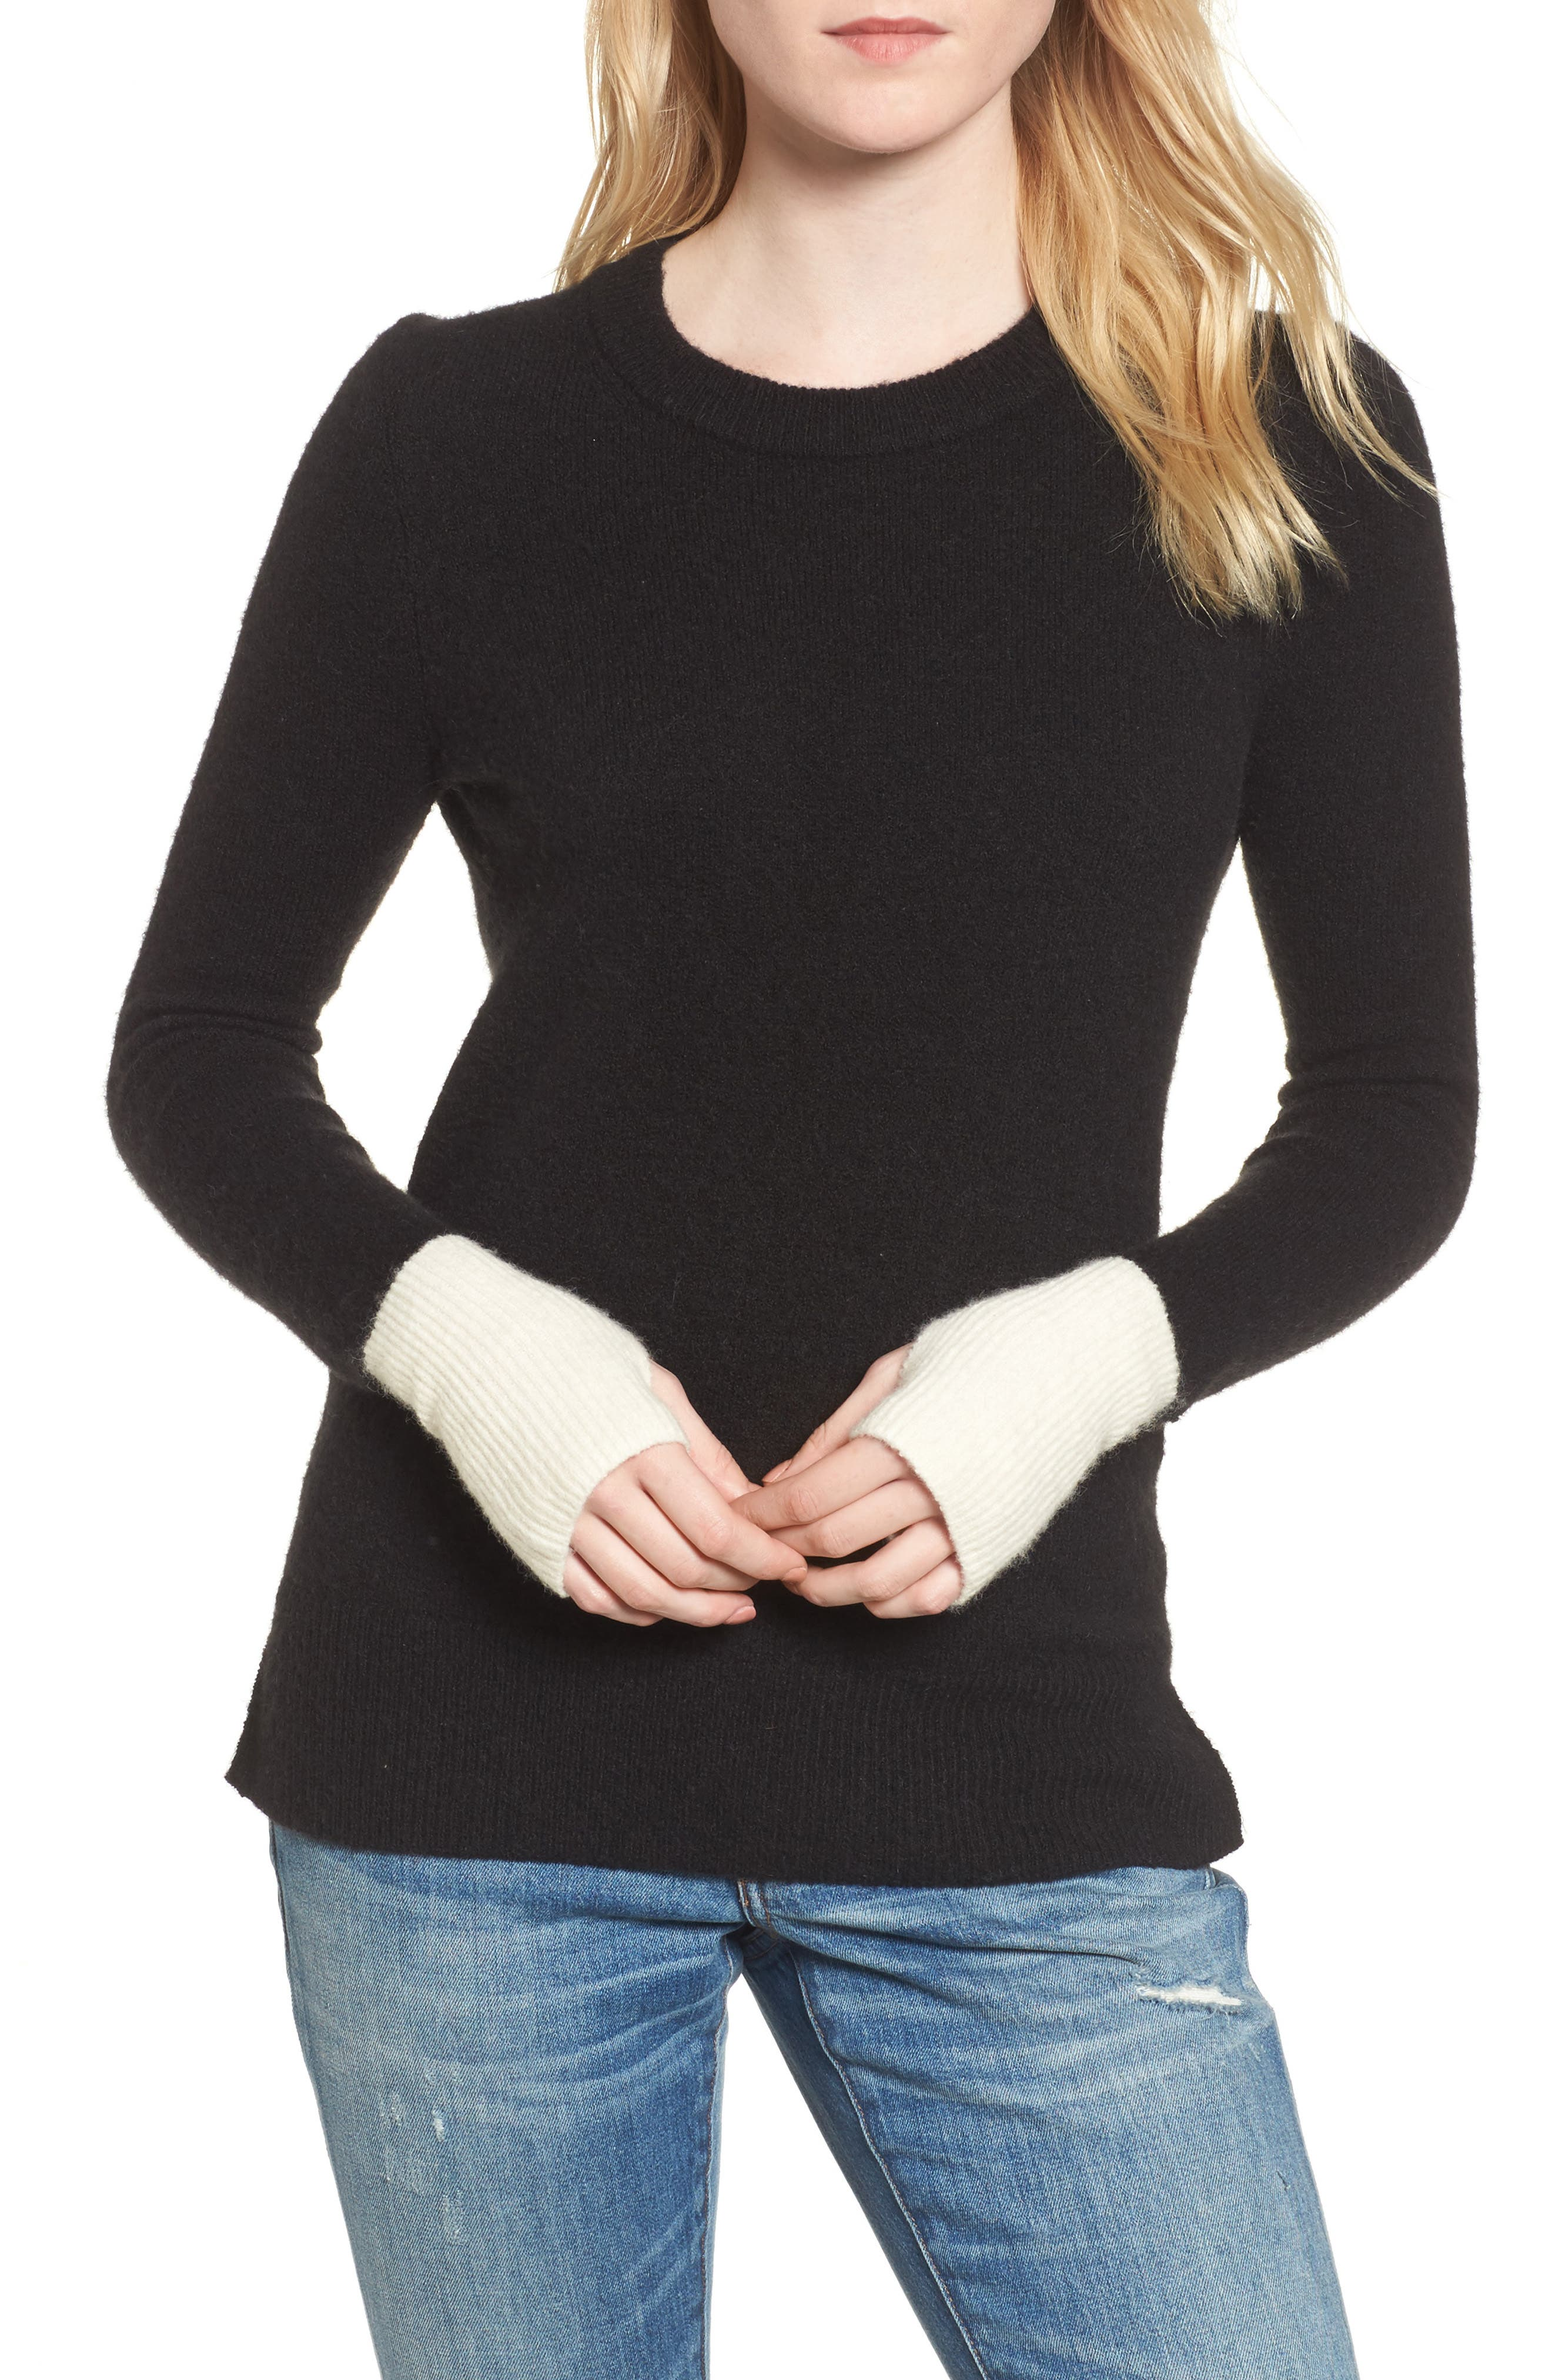 Fremont Colorblock Pullover Sweater,                         Main,                         color,